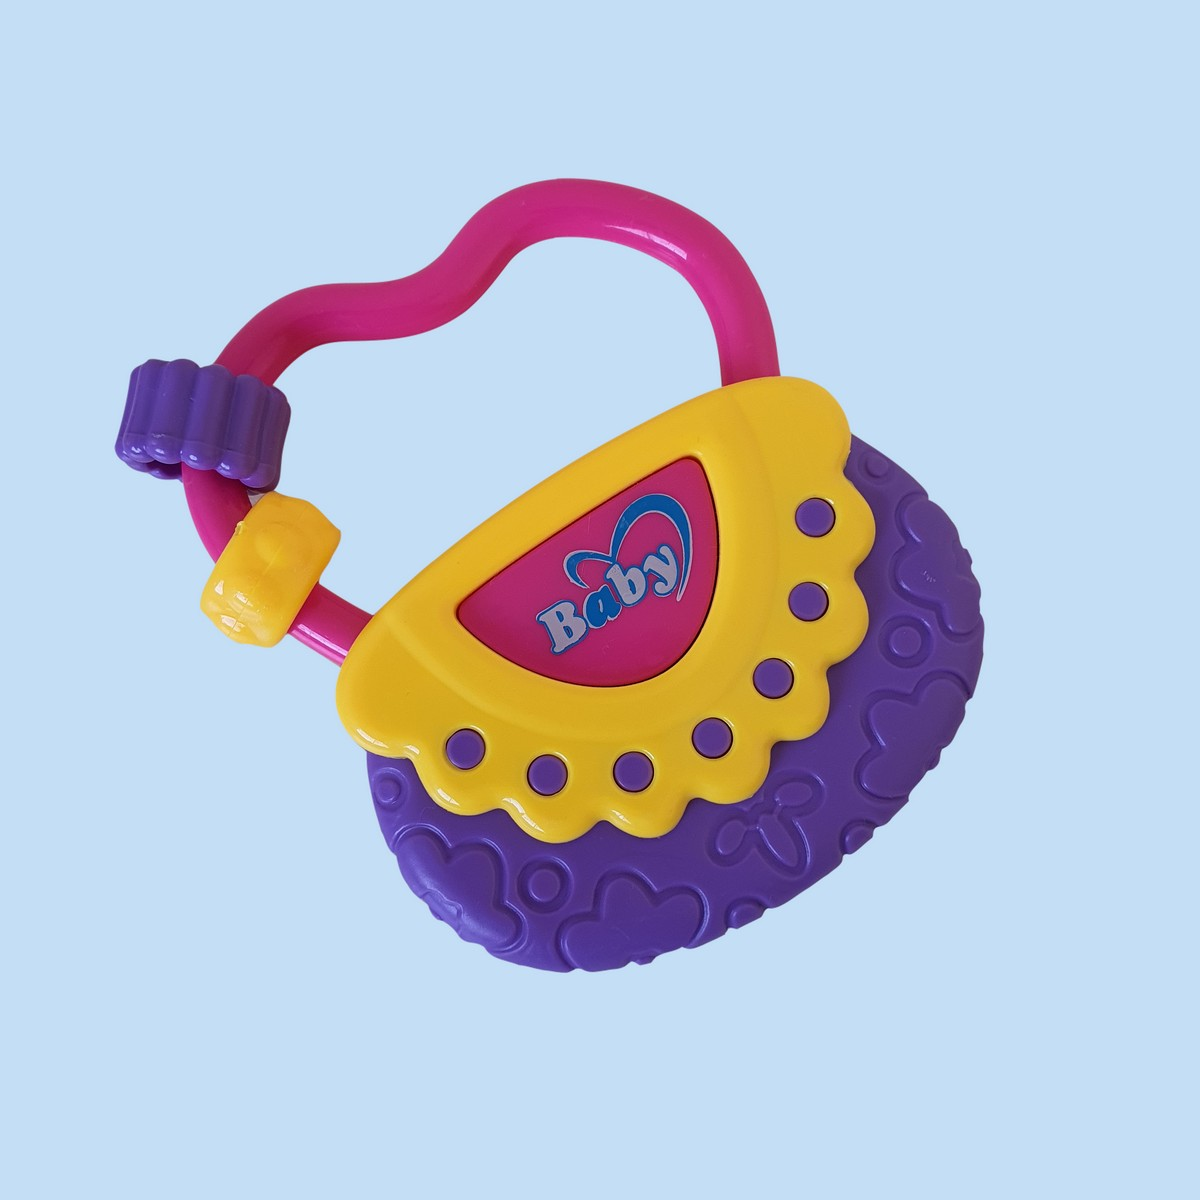 Baby Rattle  Babies and Toddlers Toys  Colorful Rattle